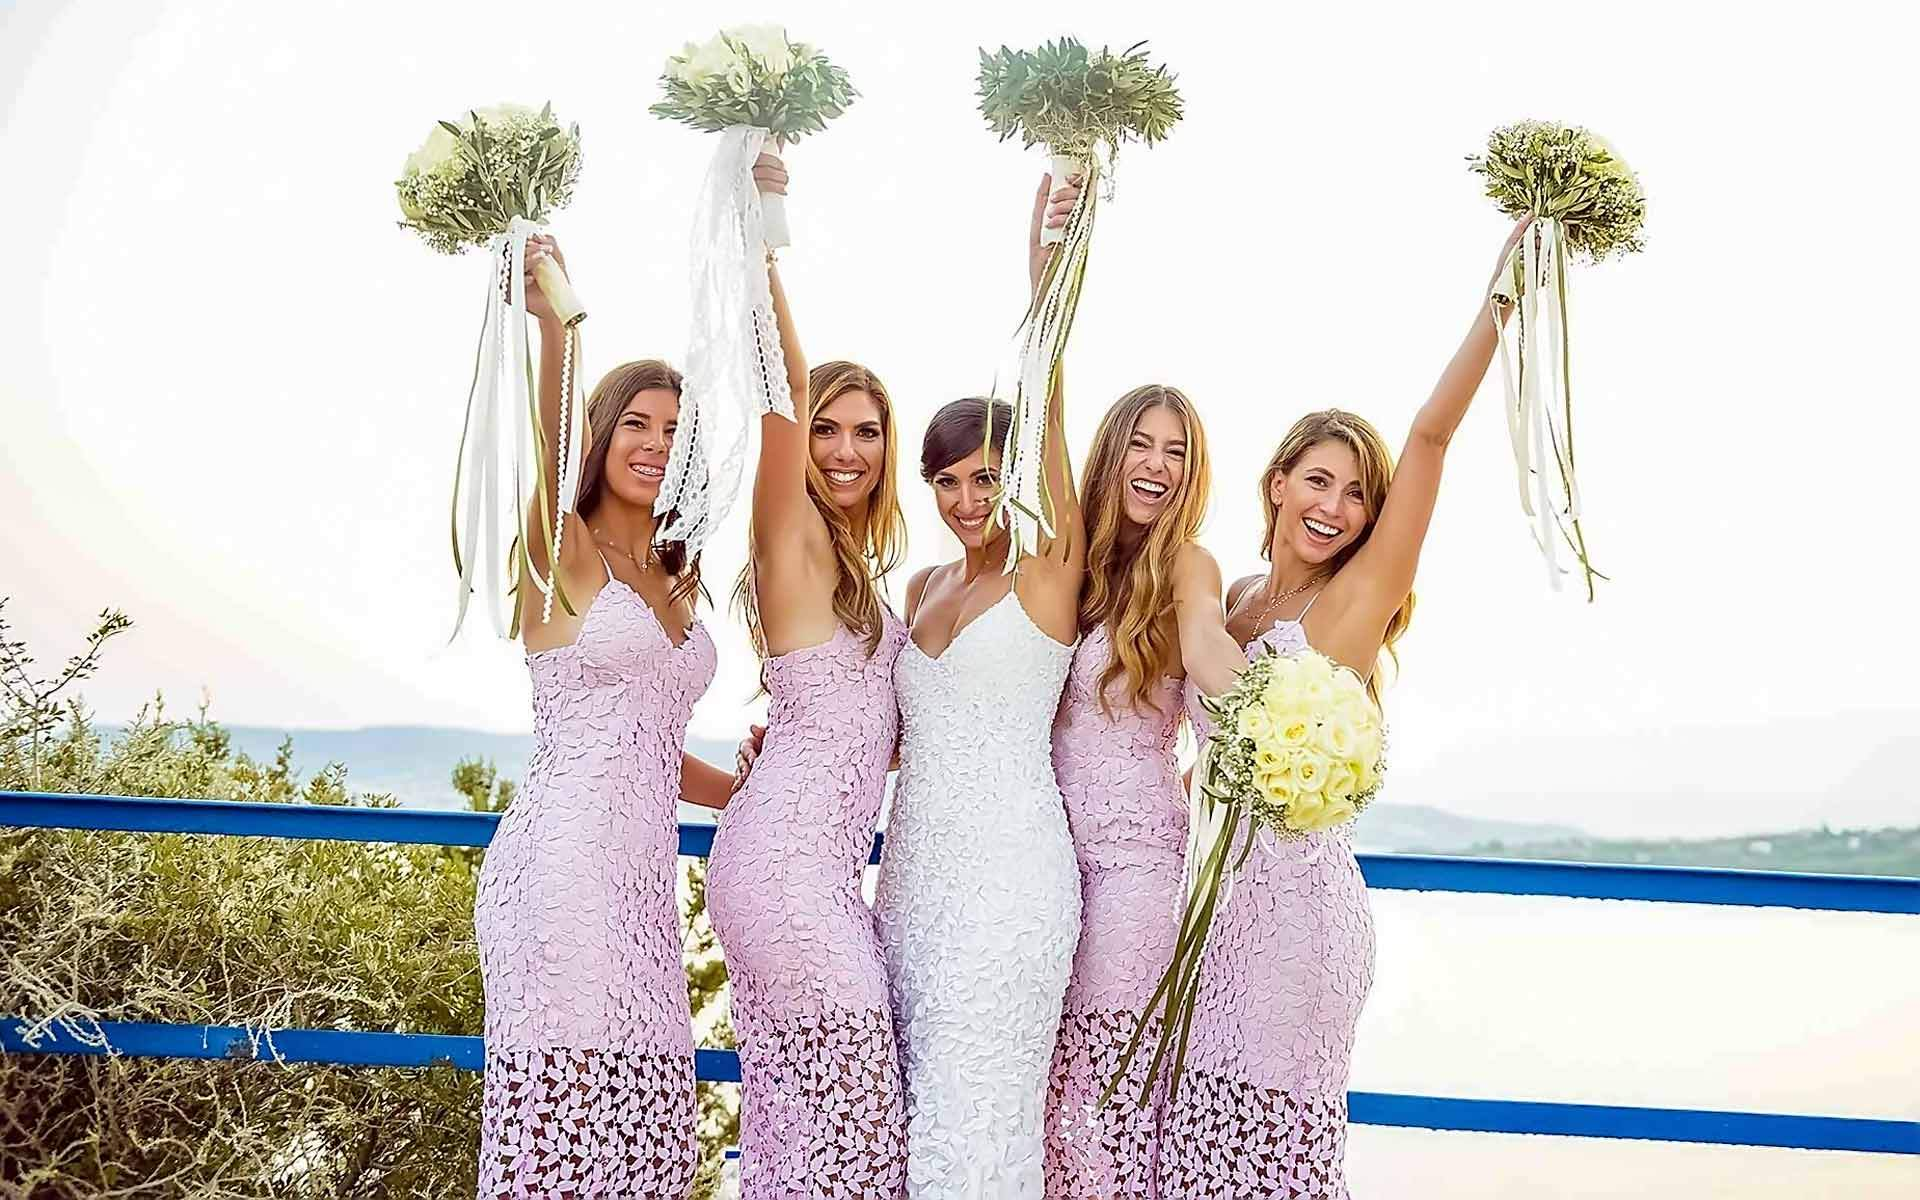 Happy-Bridesmaids-With-The-Bride-Are-Posing-by-Diamond-Events